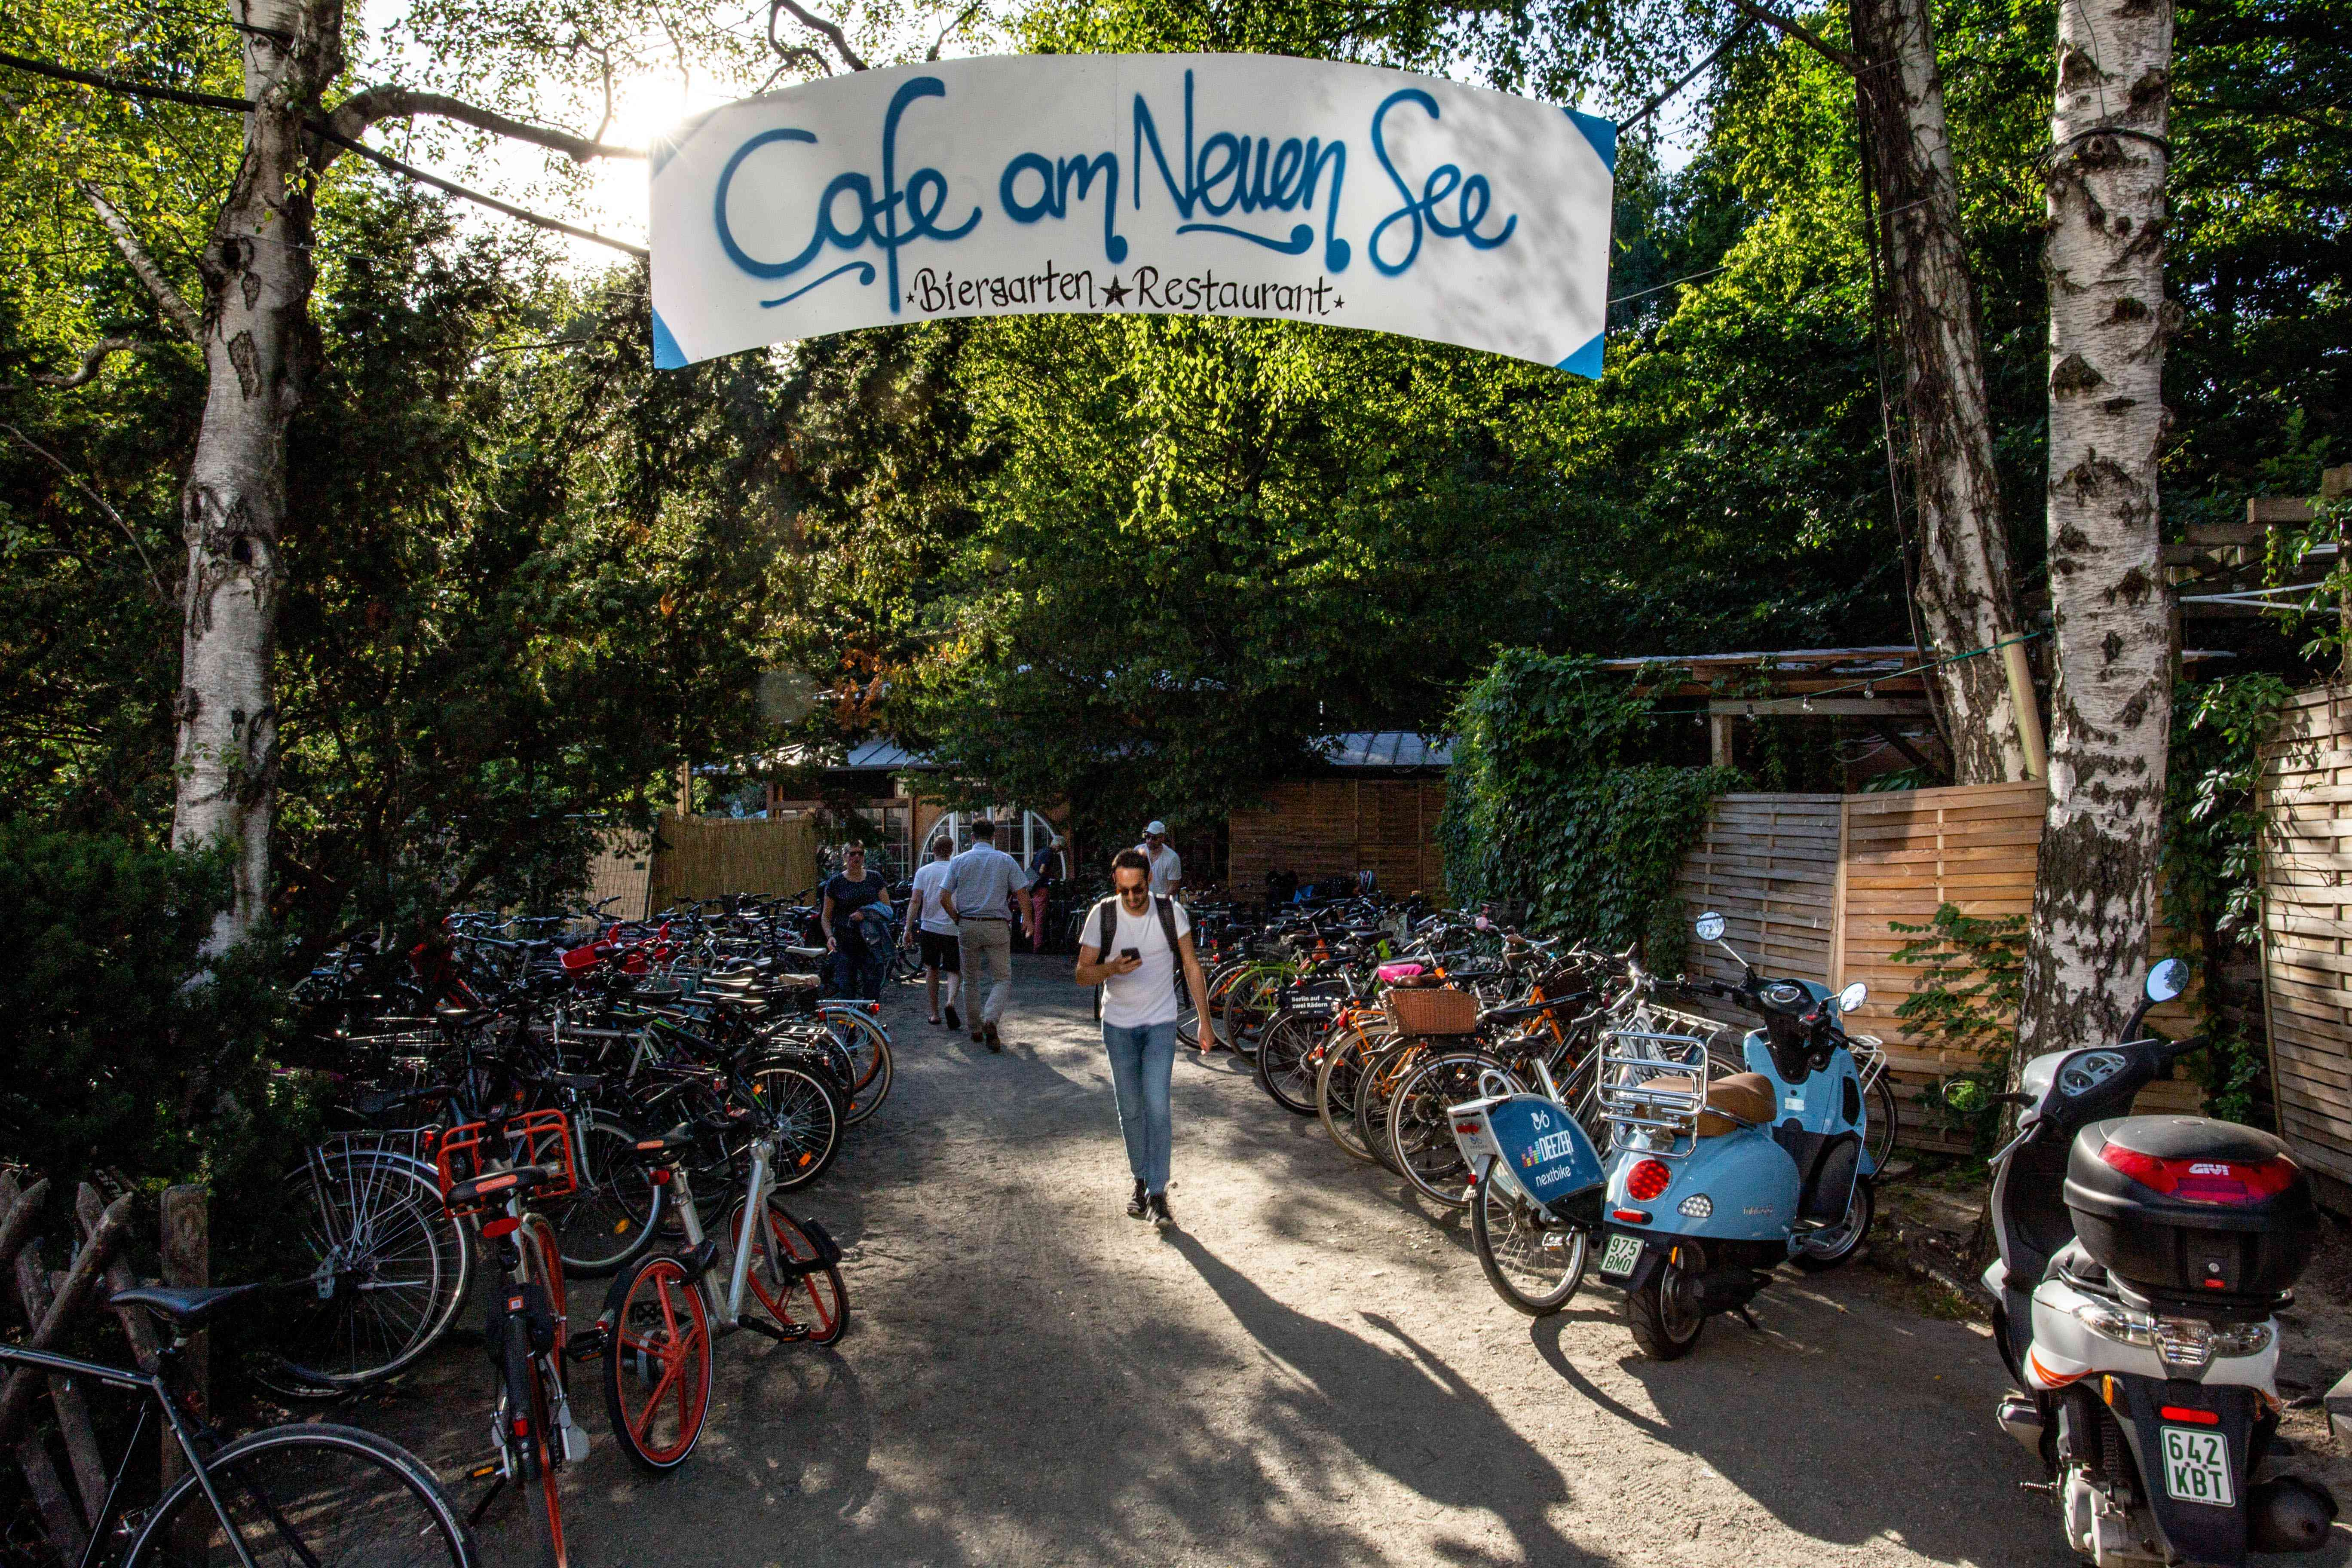 The entrance to Cafe am Neuen See and rows of bikes parked outside the sign